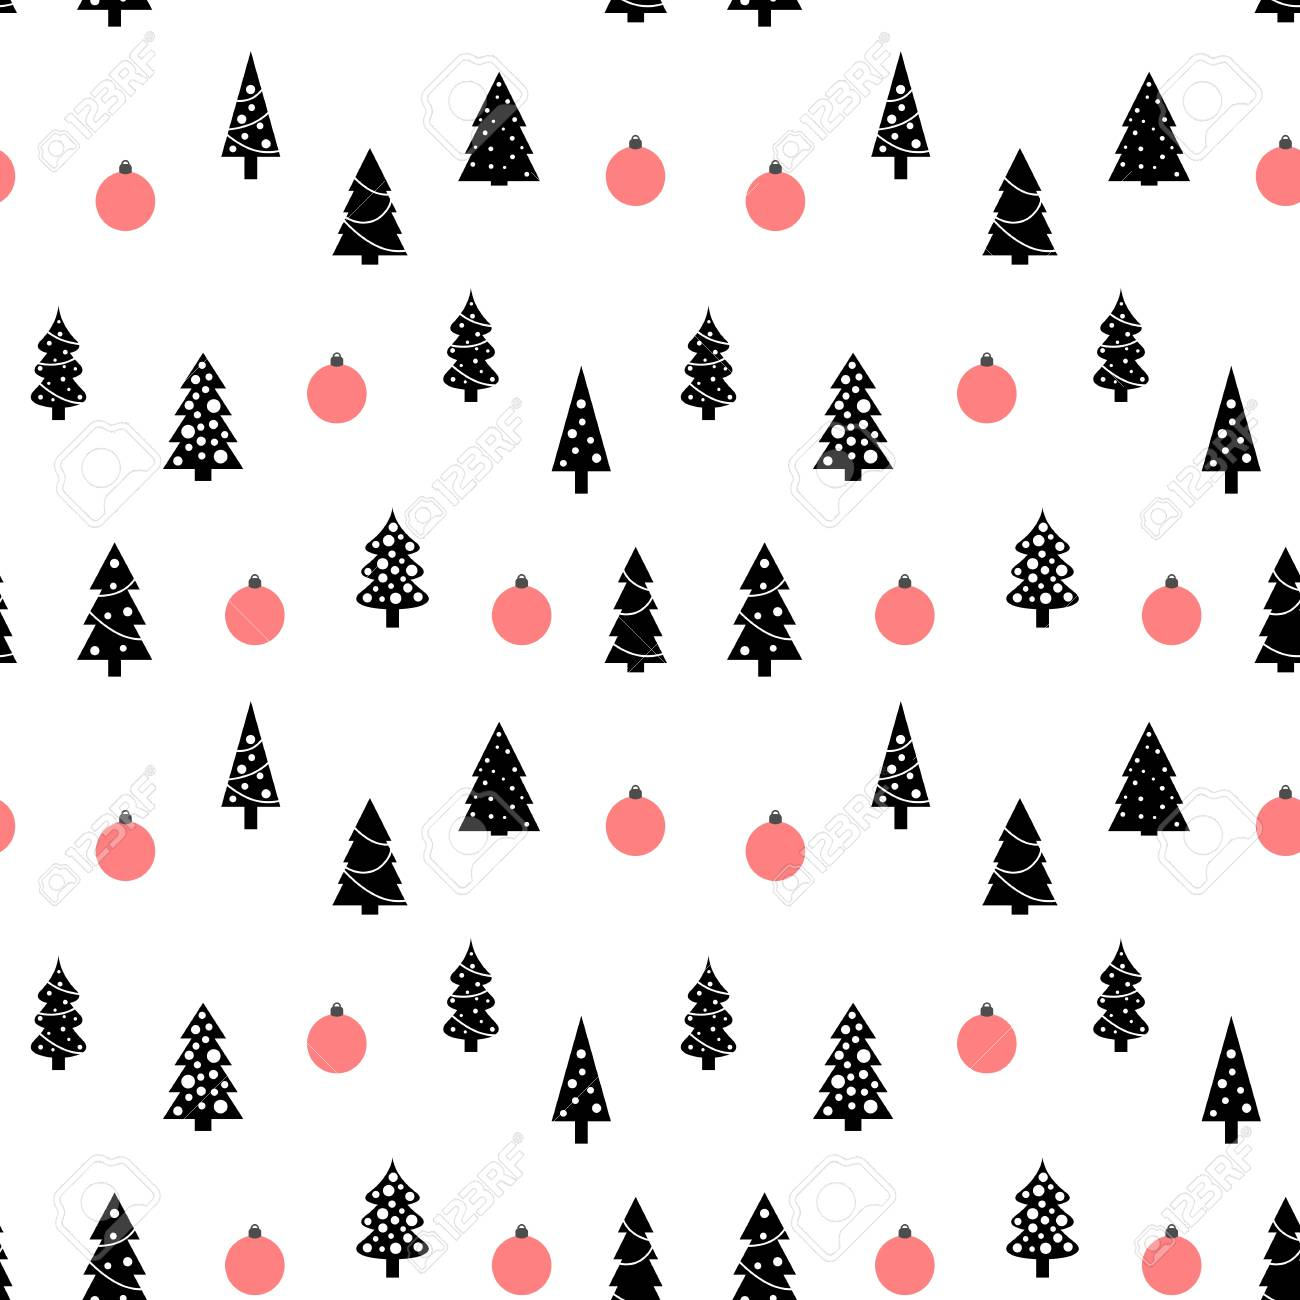 Christmas Tree Pattern.Christmas Pattern Seamless Background Texture Christmas Tree